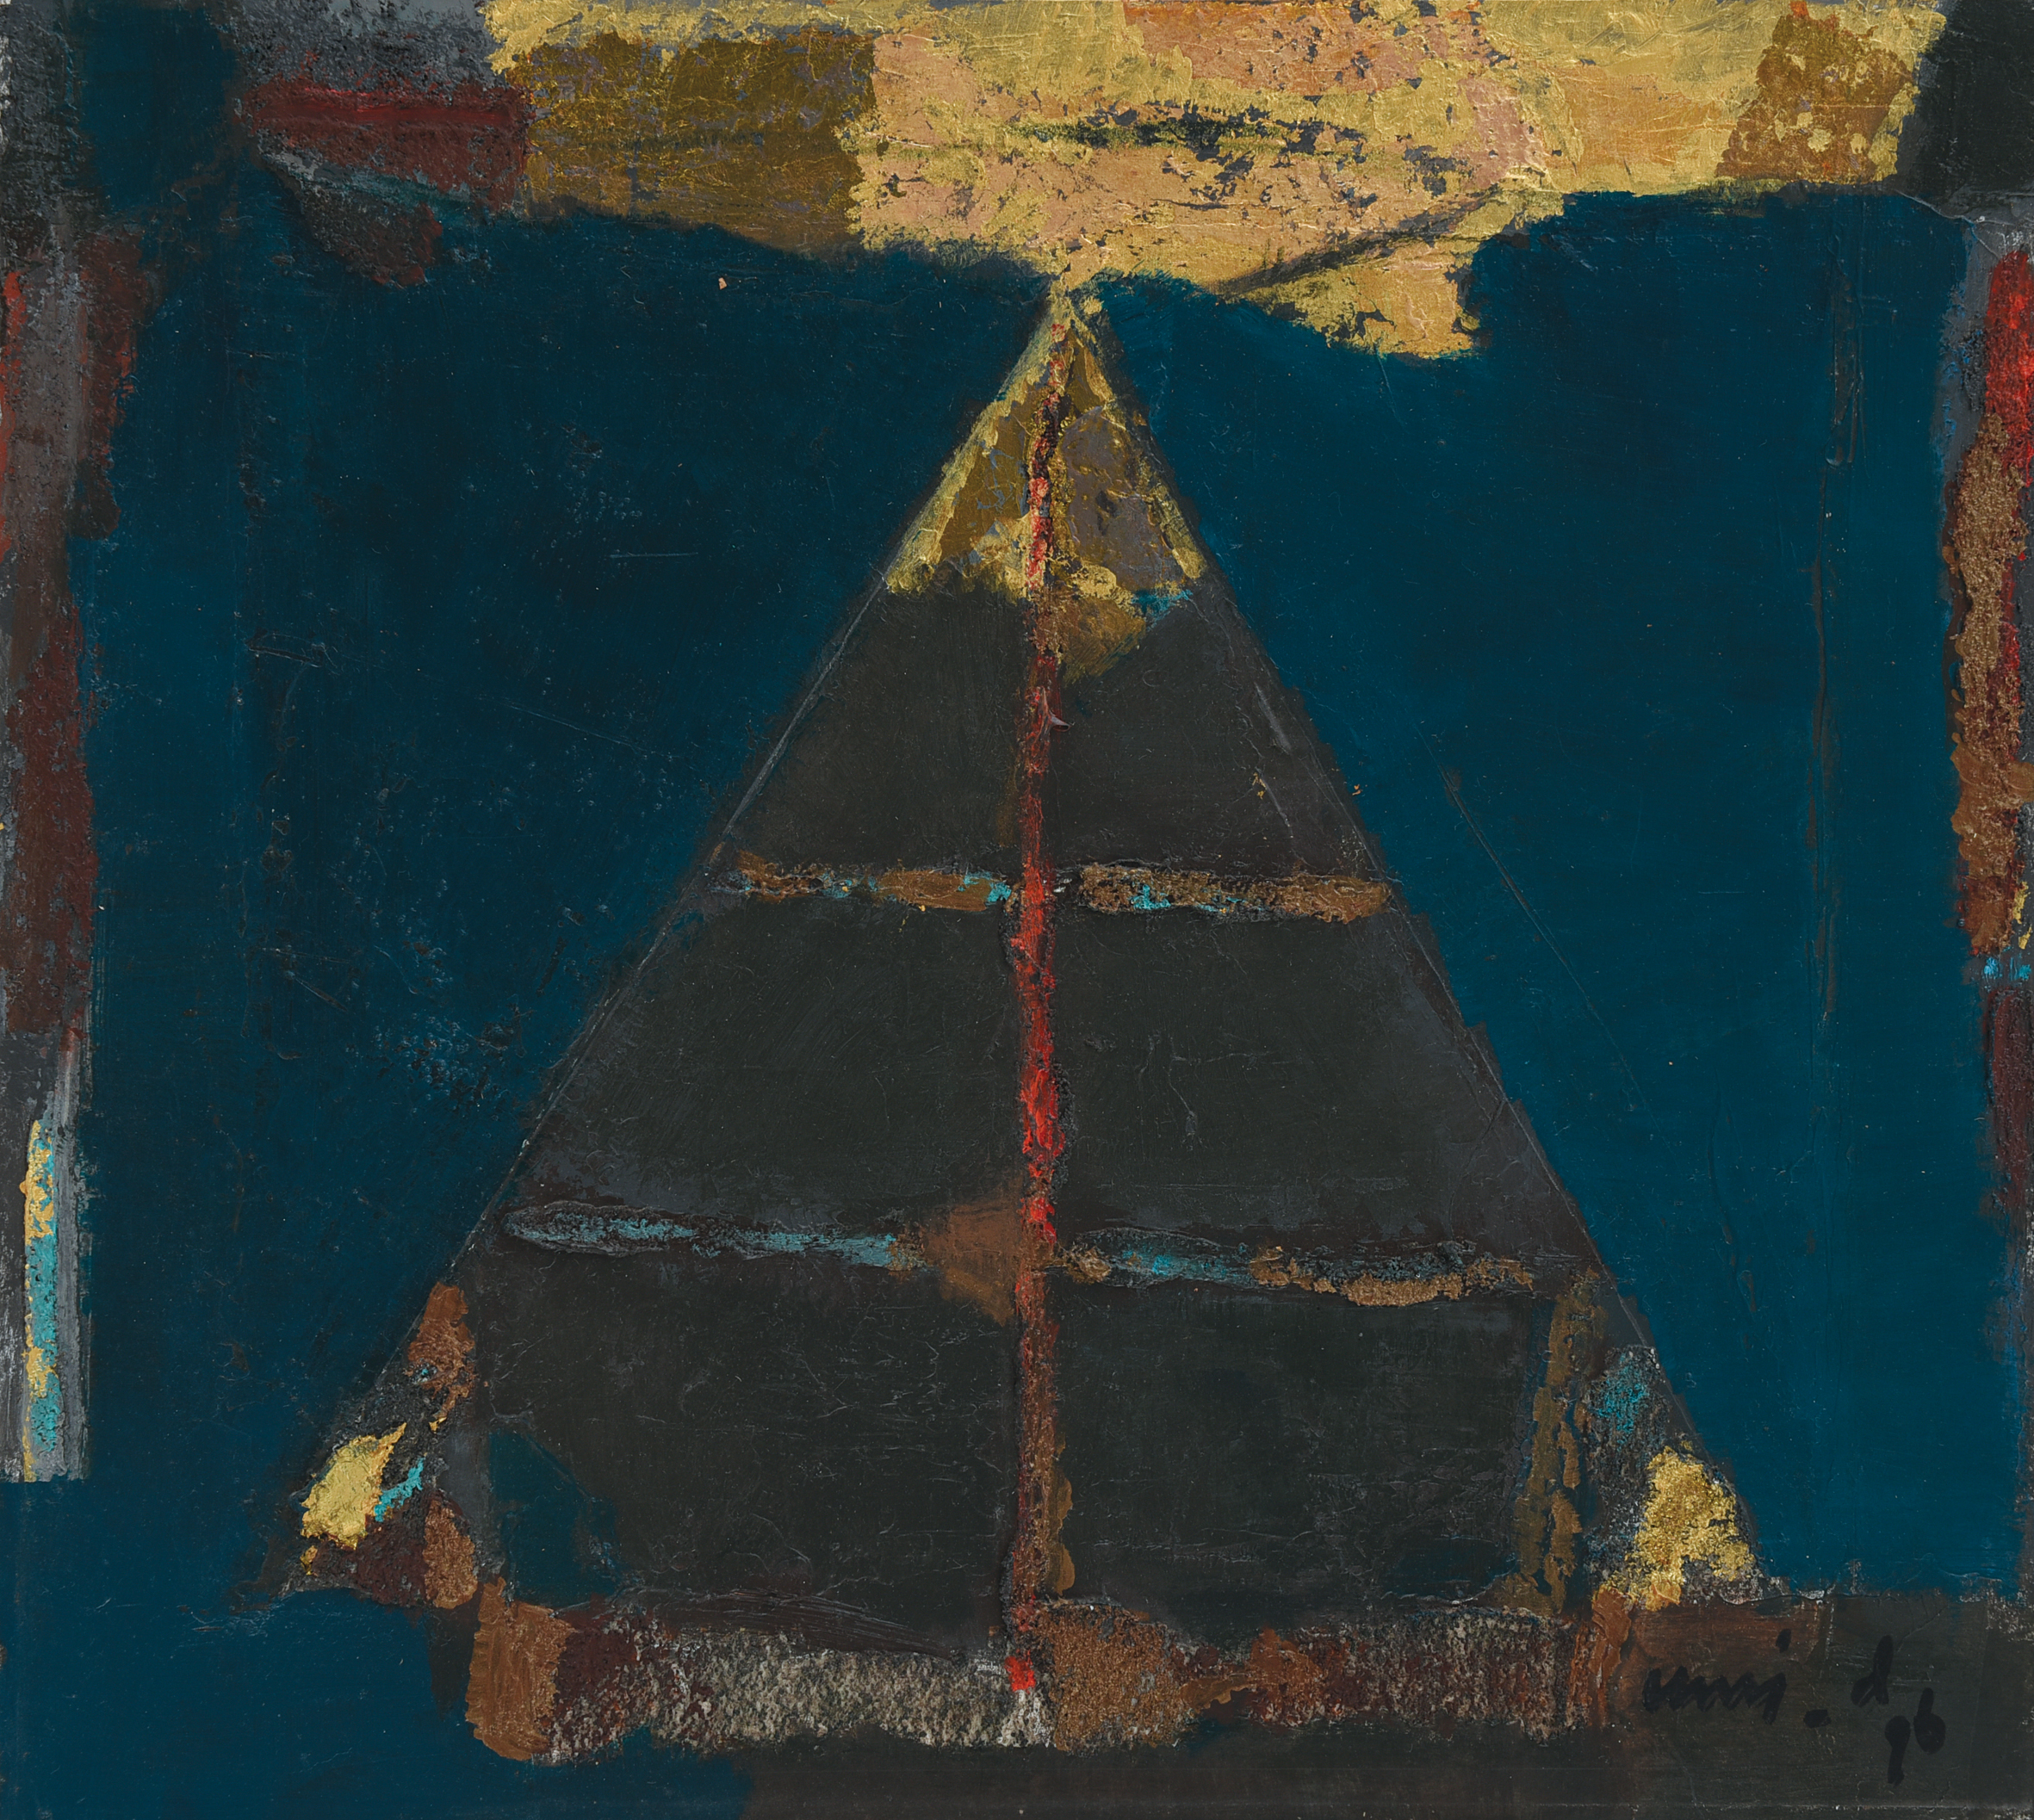 Umi Dachlan, 'Contemplation', oil and mixed media on paper mounted on board, 36 x 40 cm, 1996. Image courtesy of Art Agenda, S.E.A.